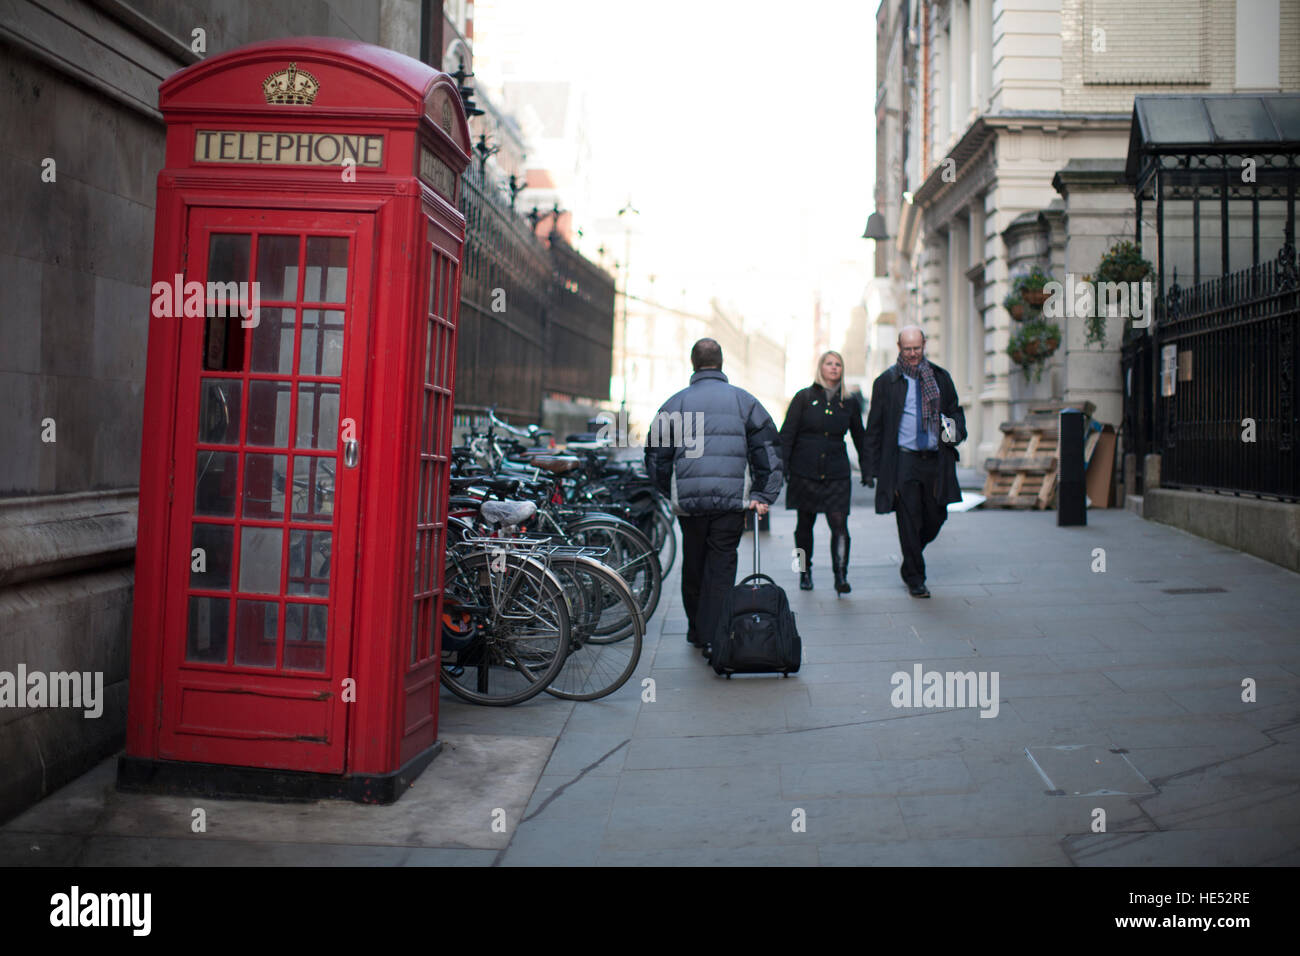 Old style Telephone box Central London - Stock Image